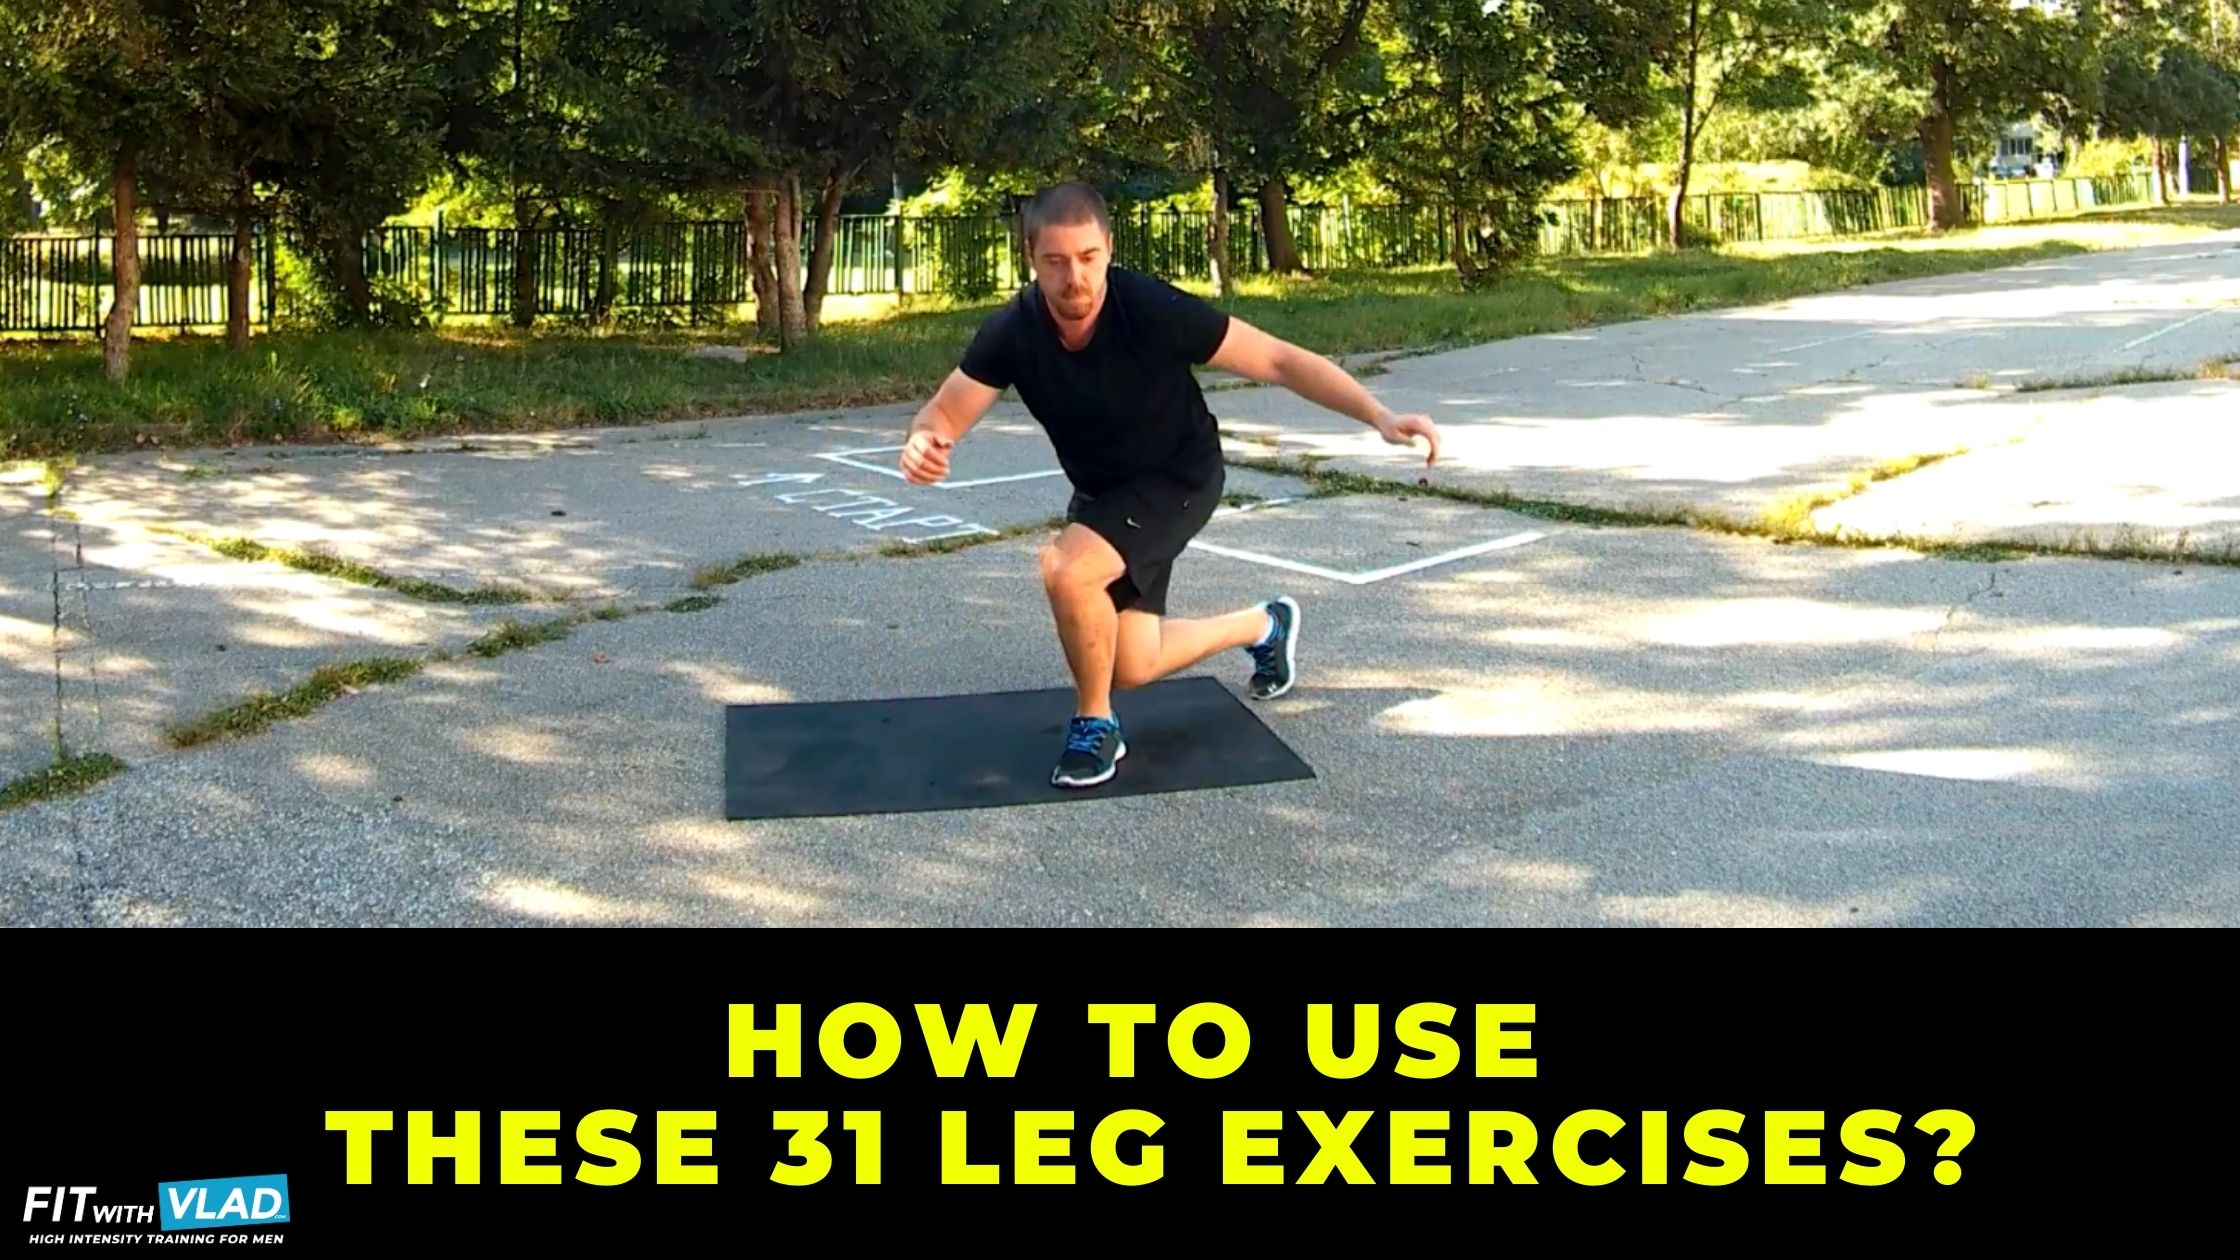 How to use this bodyweight leg exercise list to build good leg workouts